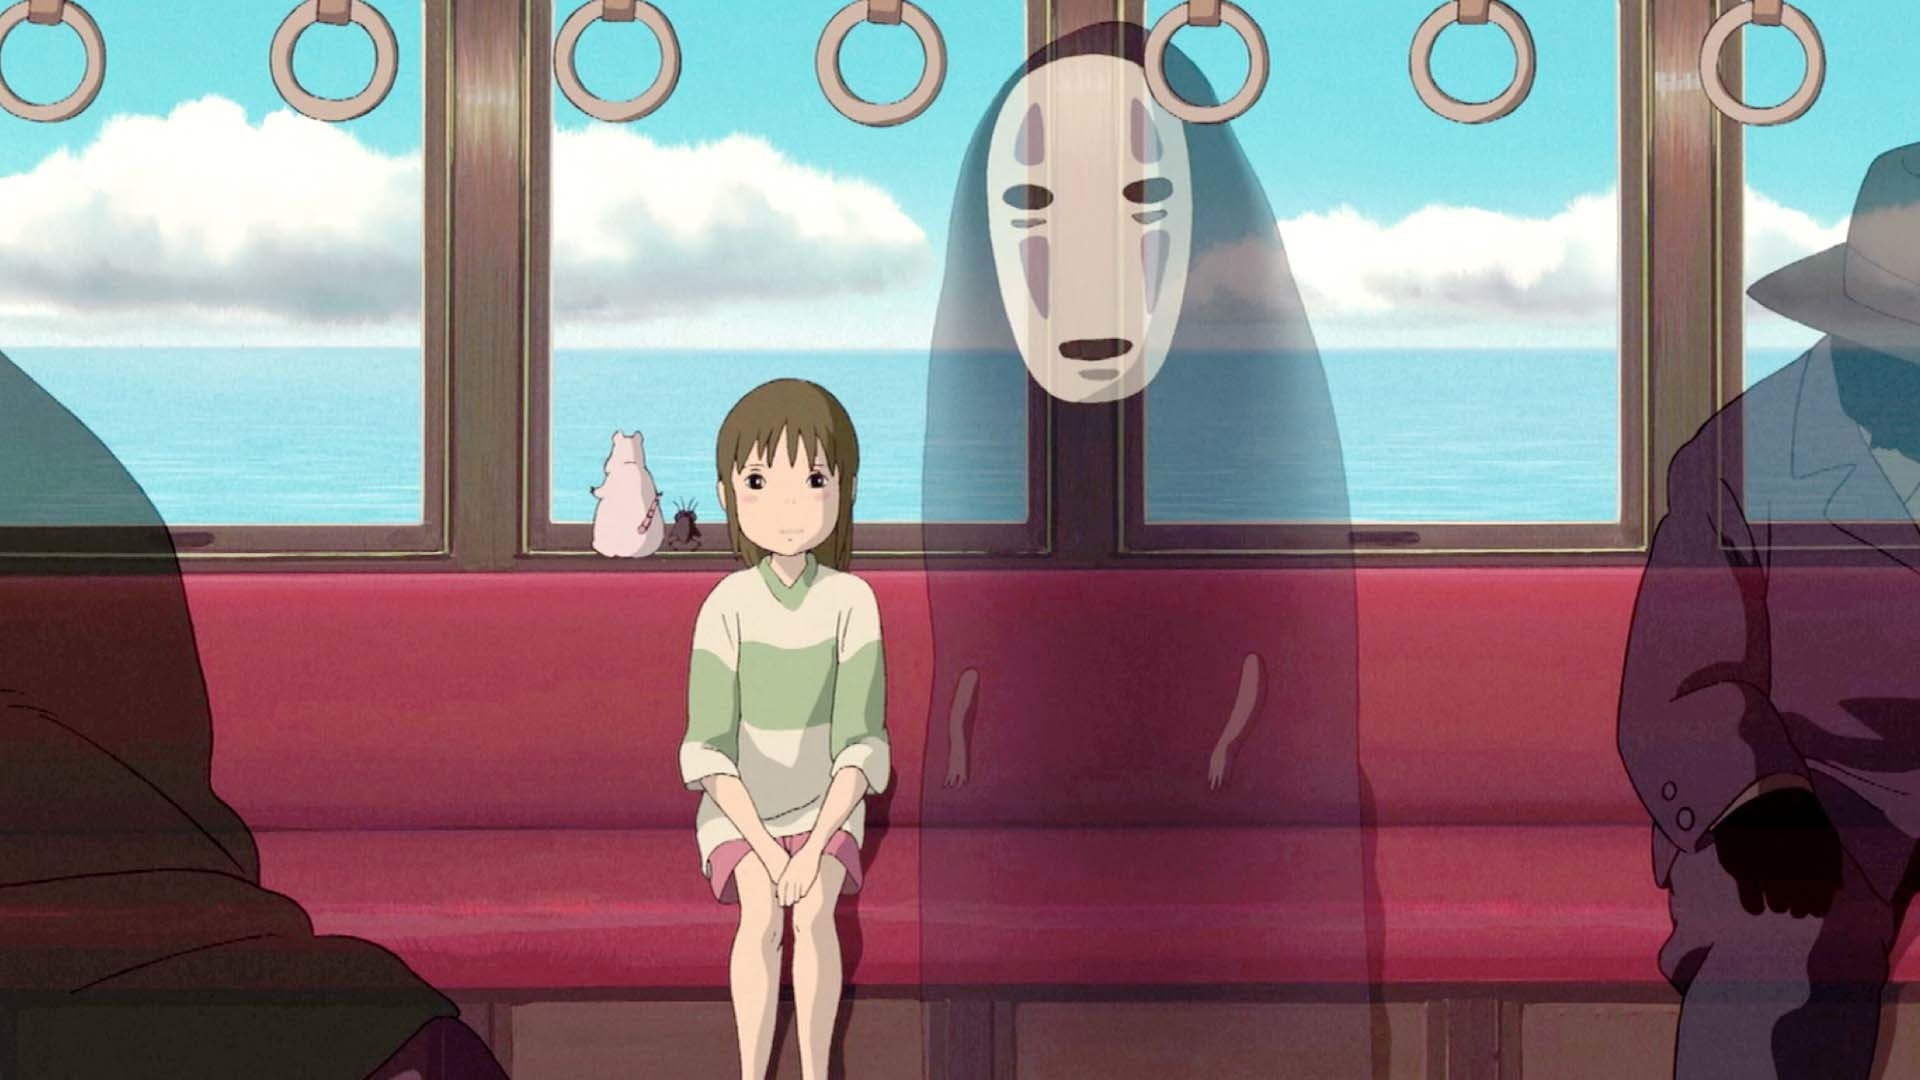 Spirited Away A work of art from Japanese anime master Hayao Miyazaki its the fascinating story of a ten yearold girl who discovers and befriends with gods